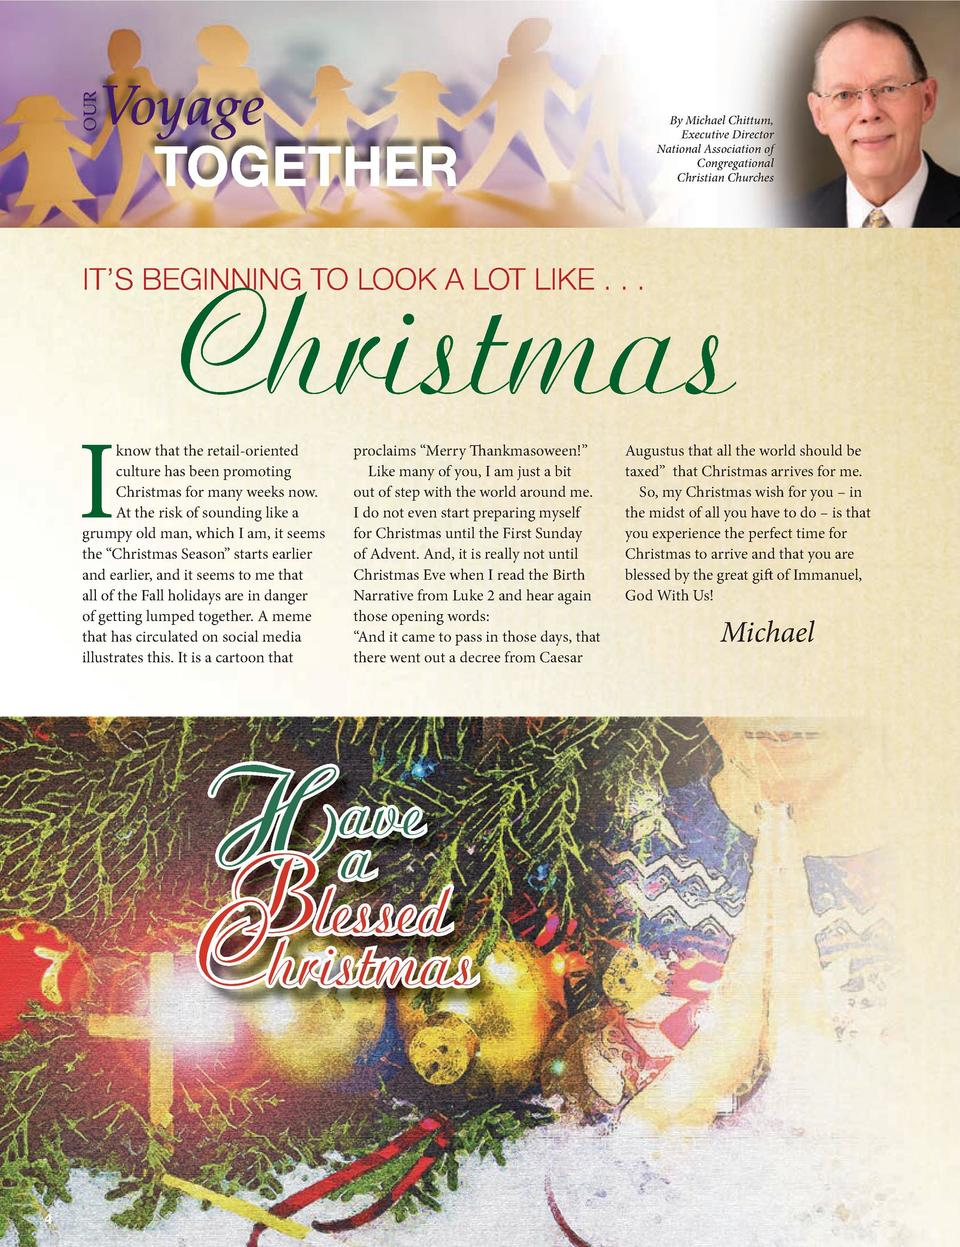 OUR  Voyage TOGETHER  By Michael Chittum, Executive Director National Association of Congregational Christian Churches  Ch...